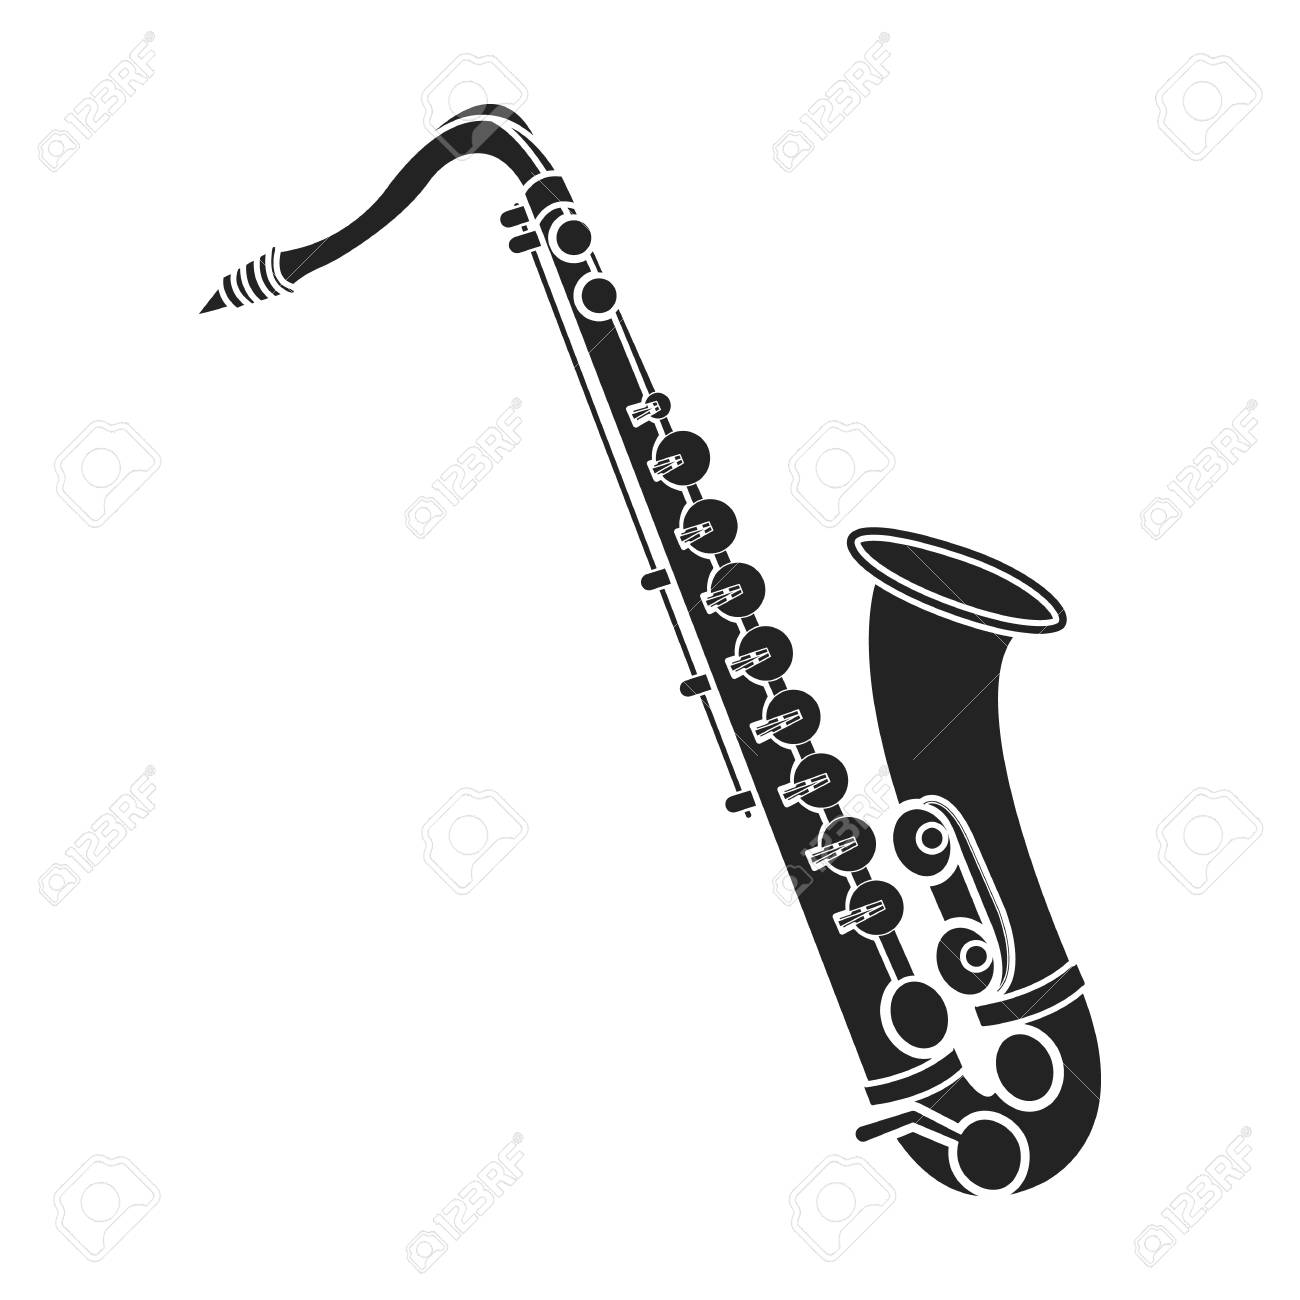 Saxophone icon in black style isolated on white background.